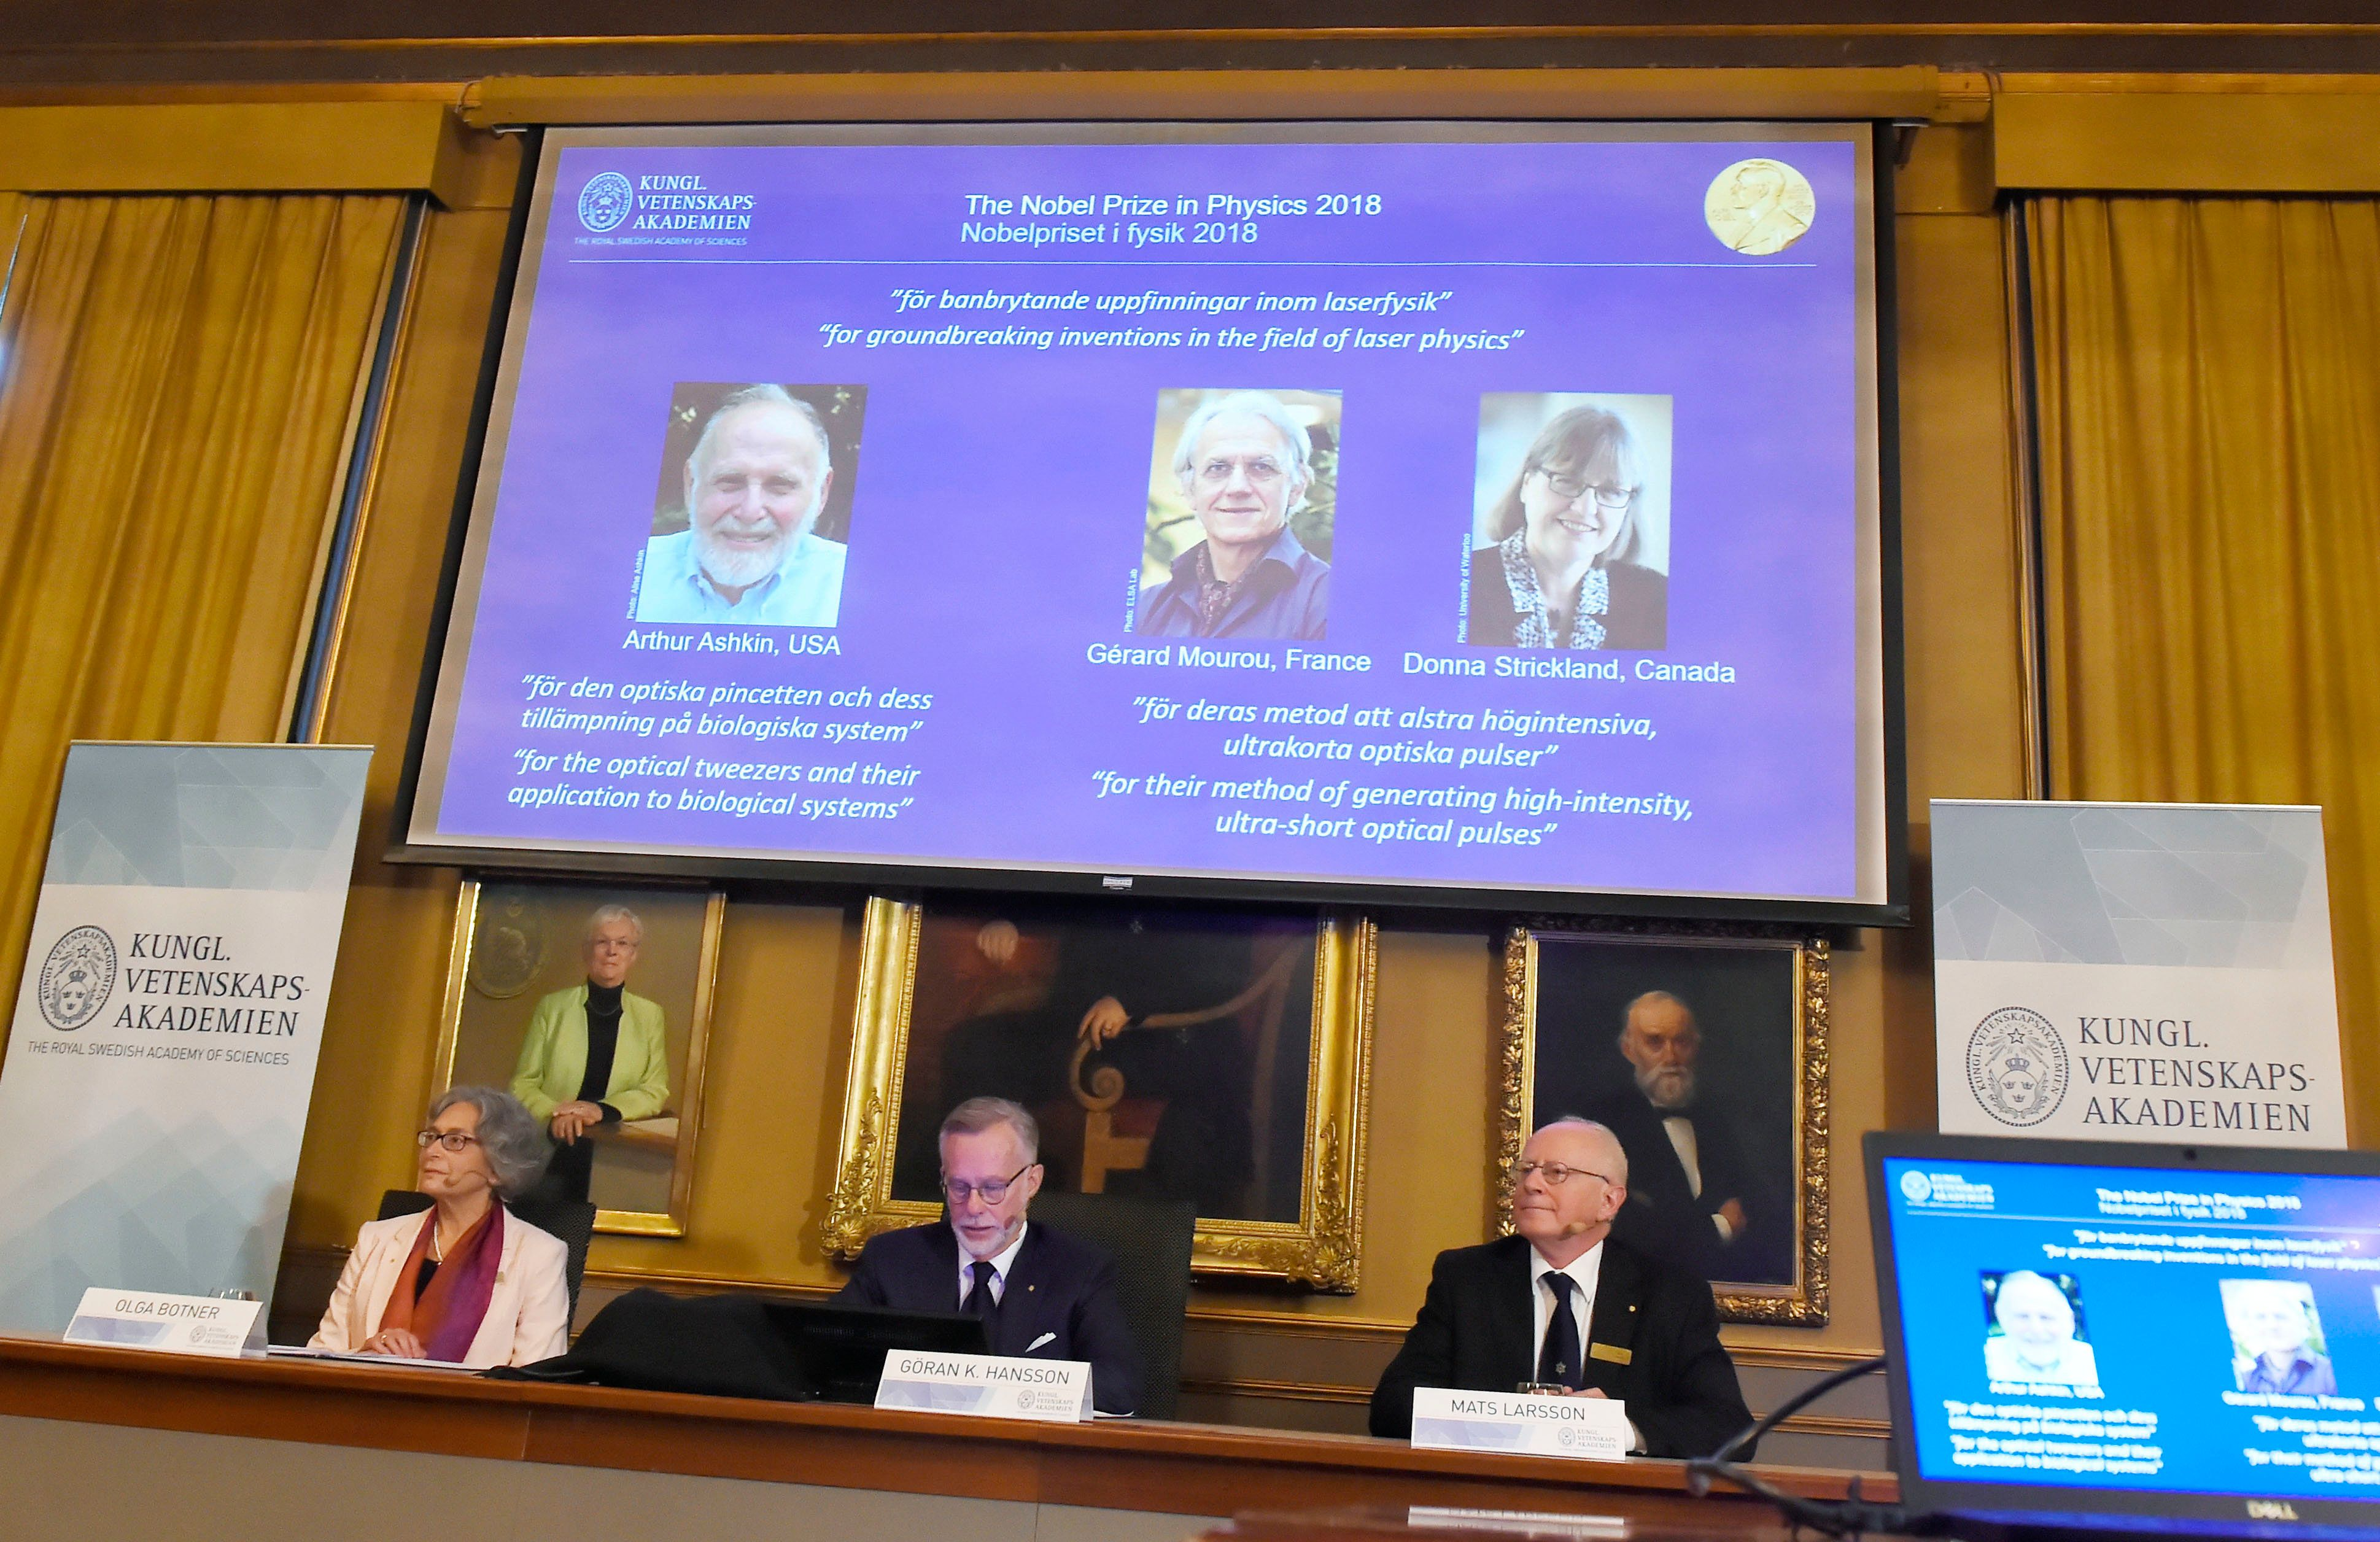 Members of the Nobel Committee for Physics (L-R) Olga Botner, Goran K Hansson and Mats Larsson sit in front of a screen displaying portraits of Arthur Ashkin of the United States, Gerard Mourou of France and Donna Strickland of Canada during the announcement of the winners of the 2018 Nobel Prize in Physics at the Royal Swedish Academy of Sciences on October 2, 2018 in Stockholm. - The Nobel Prize laureates for physics 2018 Arthur Ashkin of the United States won one half of the prize, while Gerard Mourou of France and Donna Strickland of Canada shared the other half. (Photo by Hanna FRANZEN / TT News Agency / AFP) / Sweden OUT        (Photo credit should read HANNA FRANZEN/AFP/Getty Images)